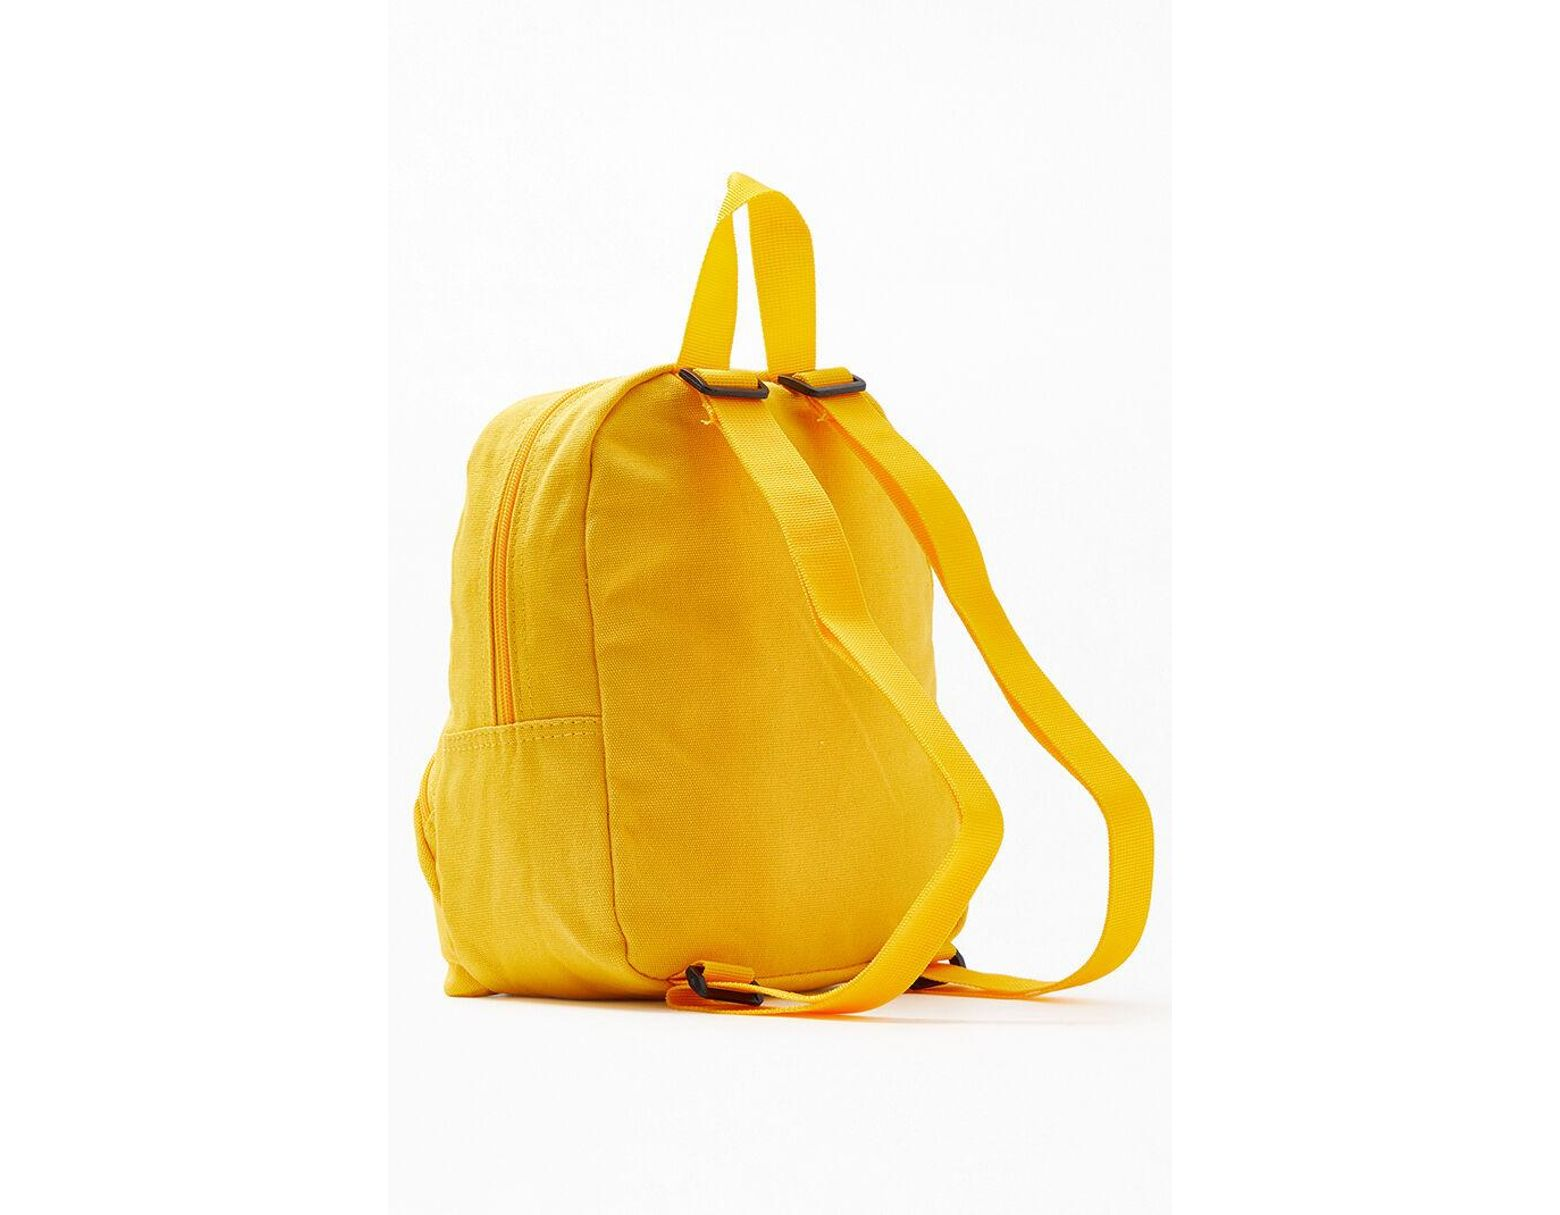 bcc1a4d54 Dickies Mustard Canvas Mini Backpack in Yellow - Lyst